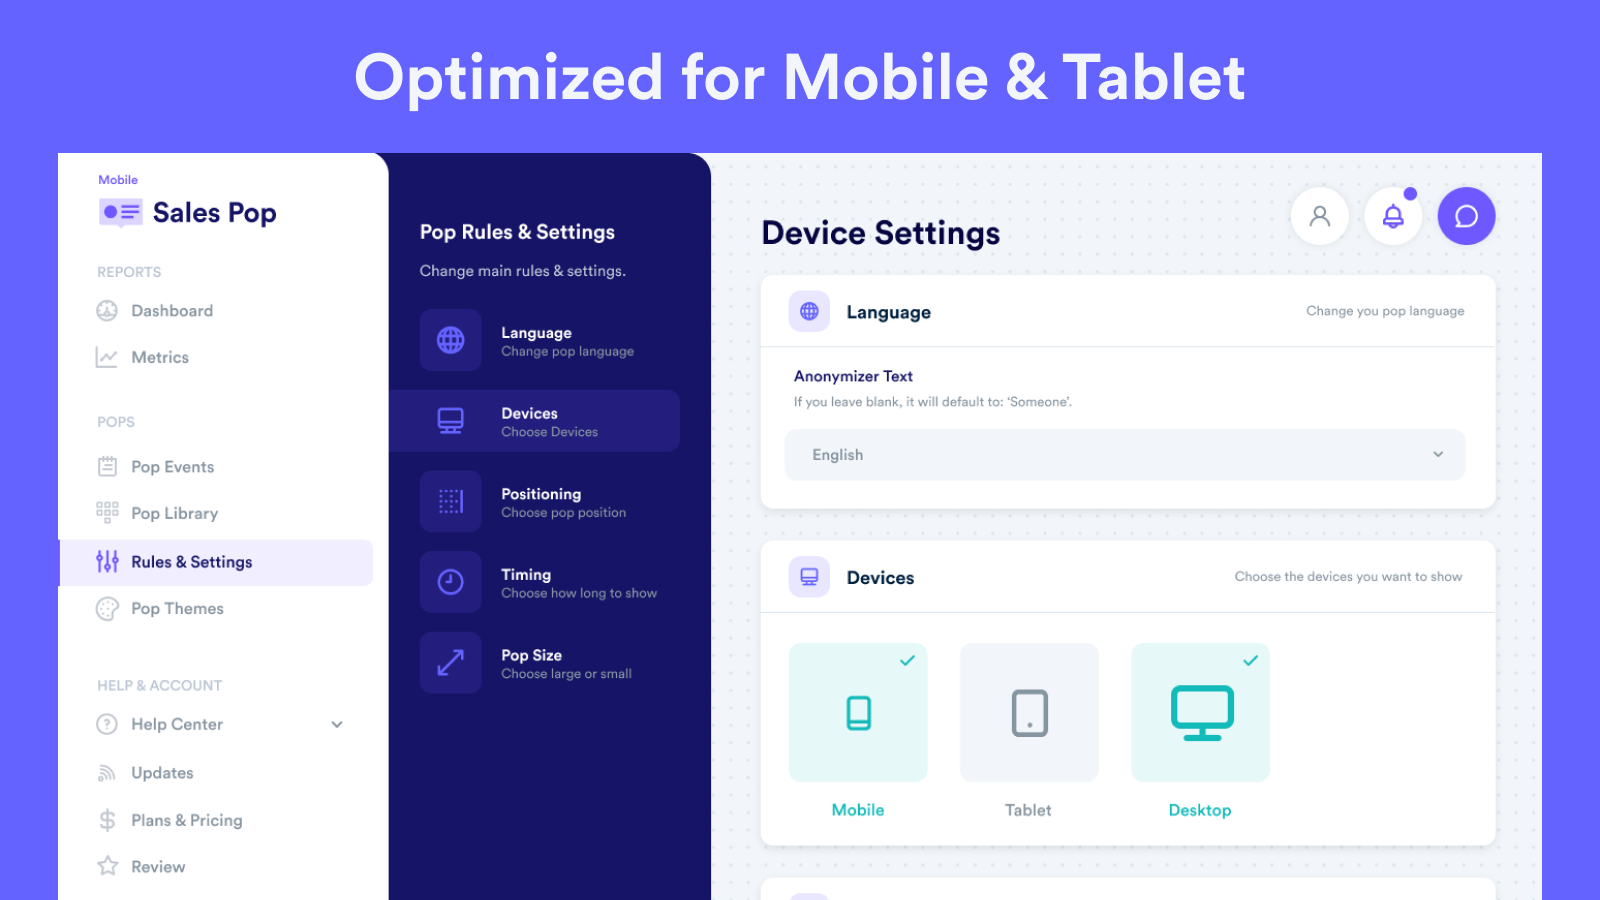 Optimized for Mobile & Tablet